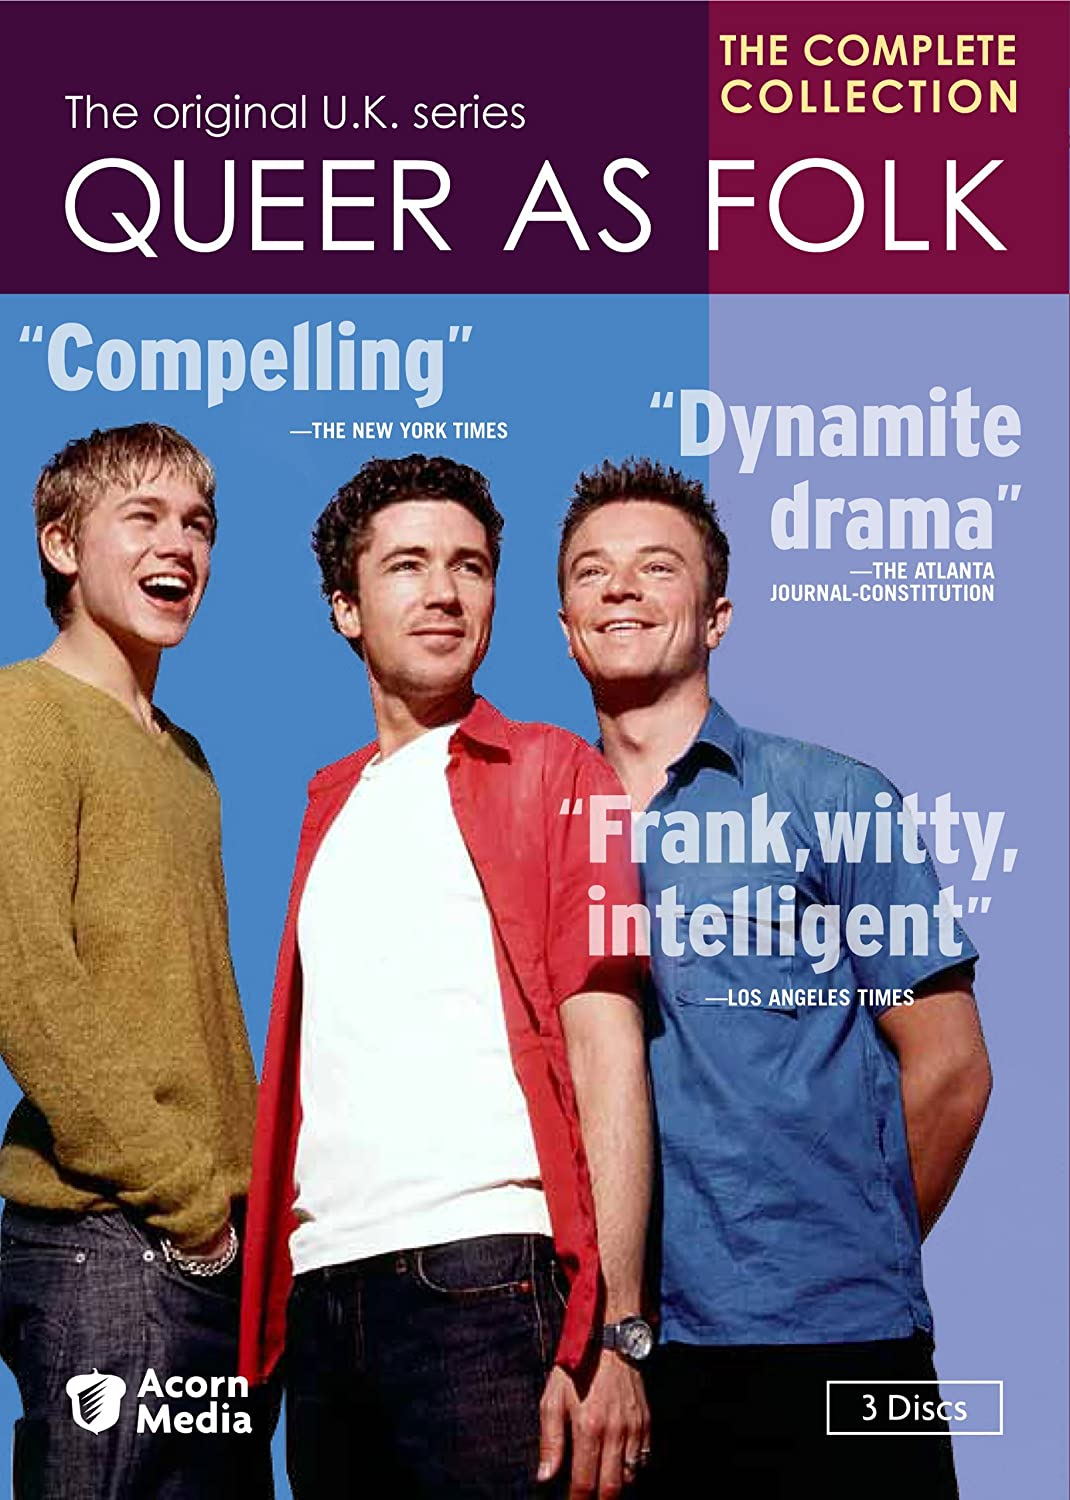 Queer As Folk: The Complete U.K. Collection Reino Unido DVD ...